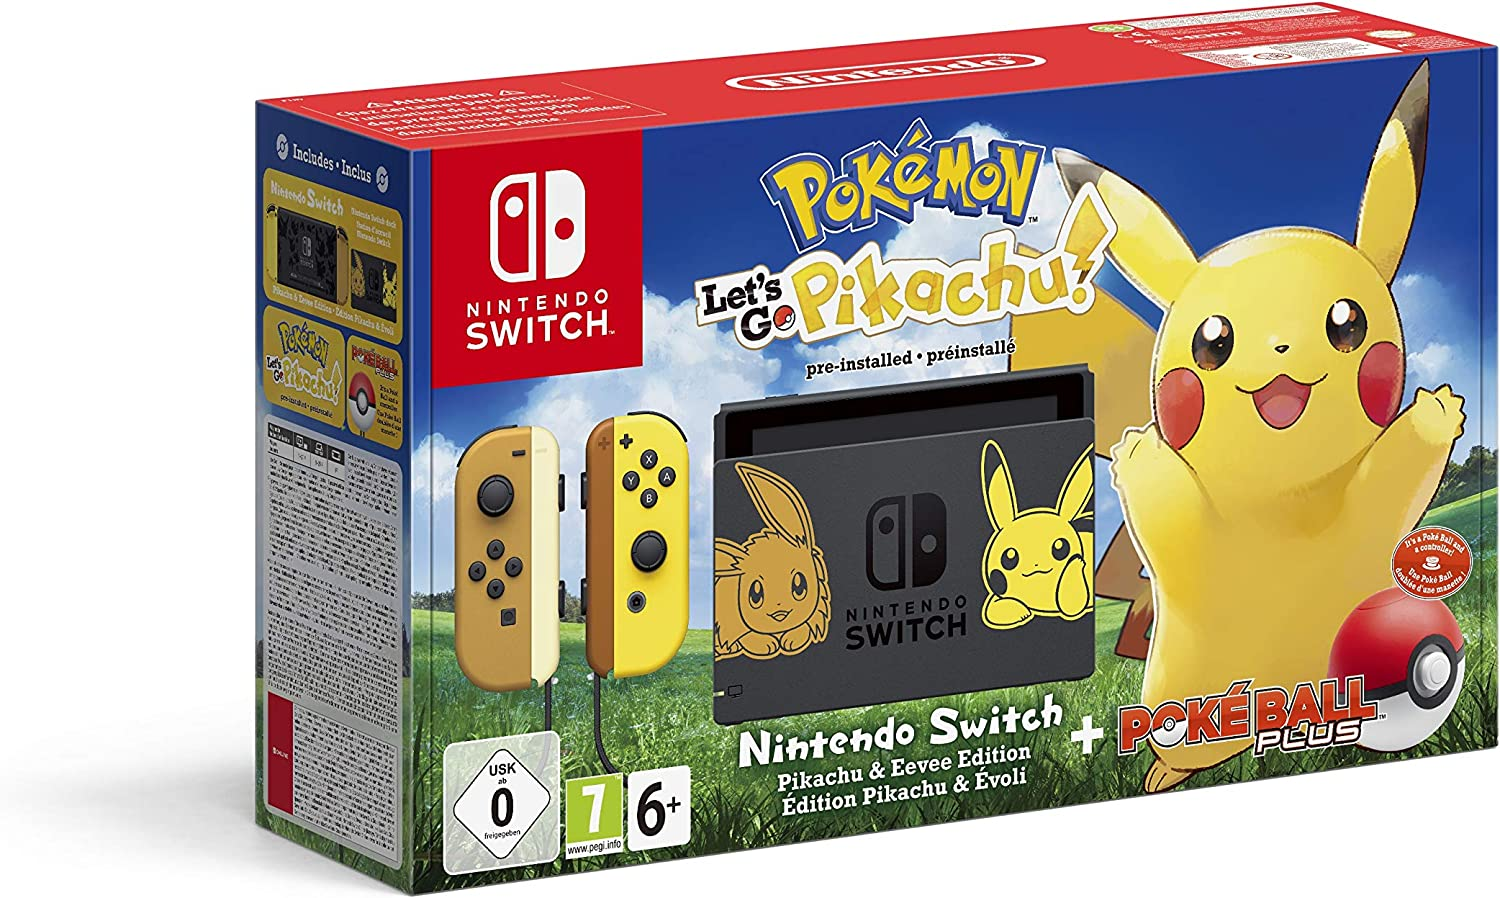 Nintendo Switch Pikachu & Eevee Edition + Pokémon: Lets Go, Pikachu! + Poké Ball Plus, Consola de video: Amazon.es: Videojuegos